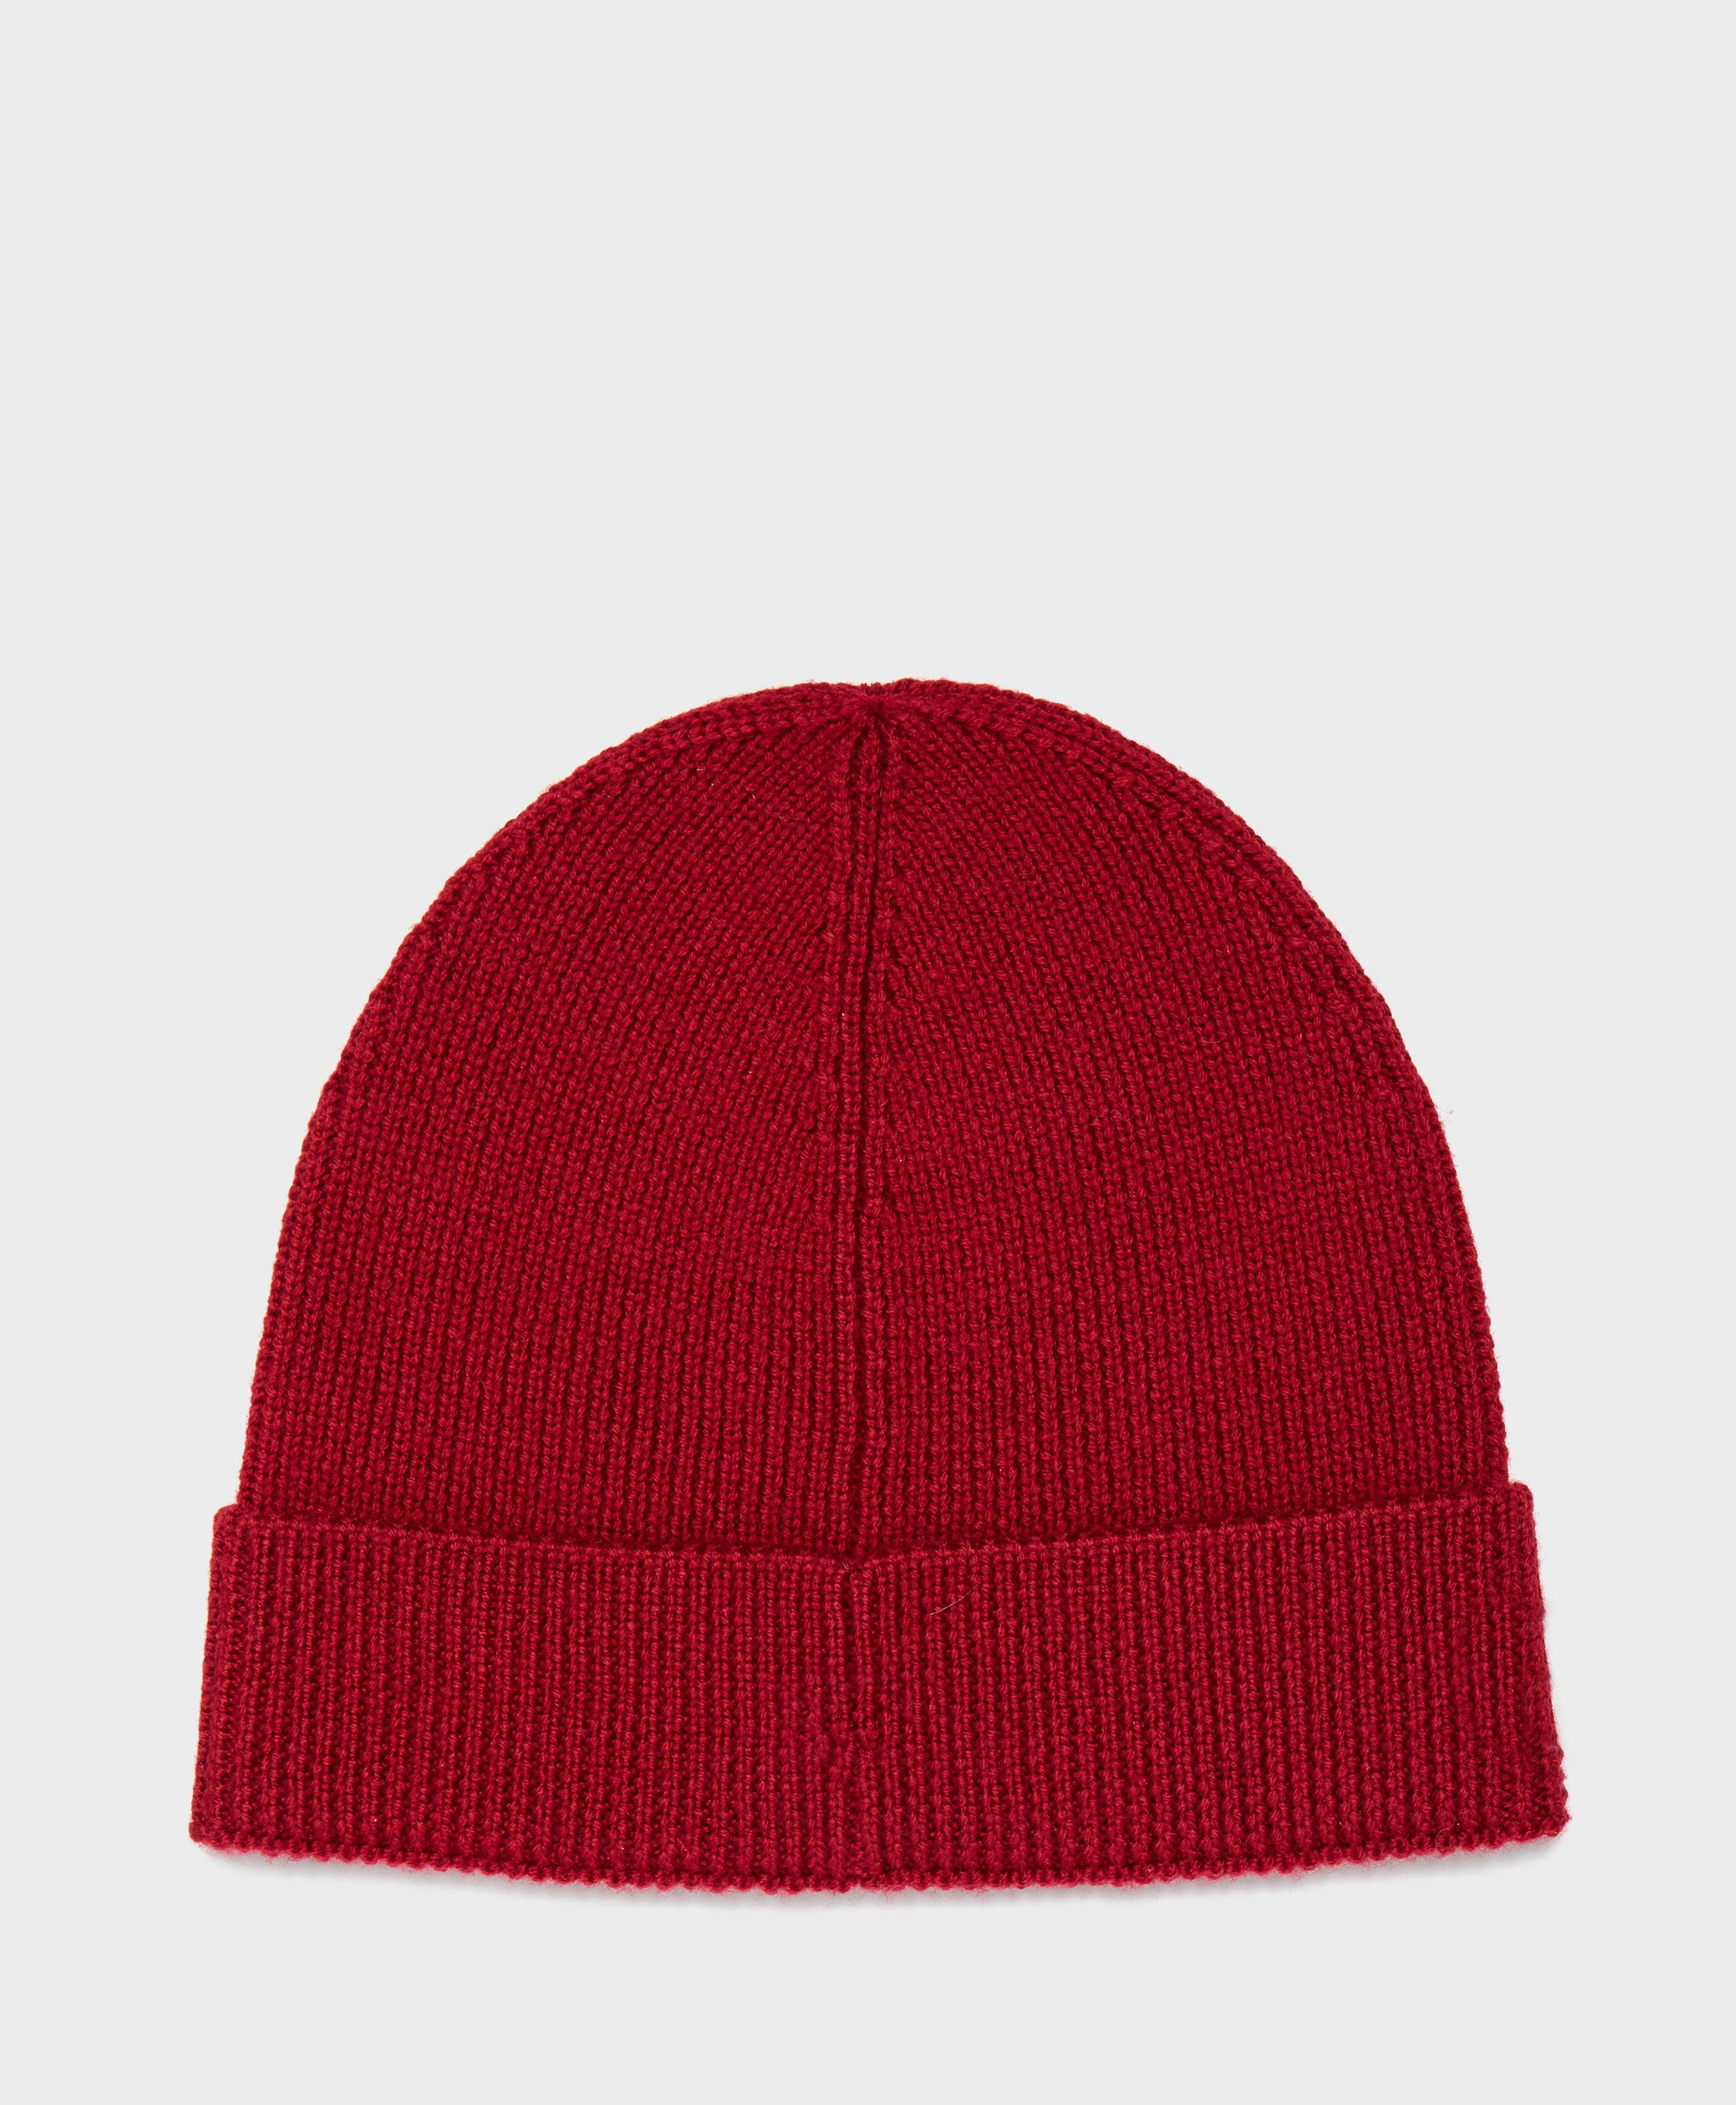 Lyst - Lacoste Ribbed Beanie in Red for Men 2bd61648d865